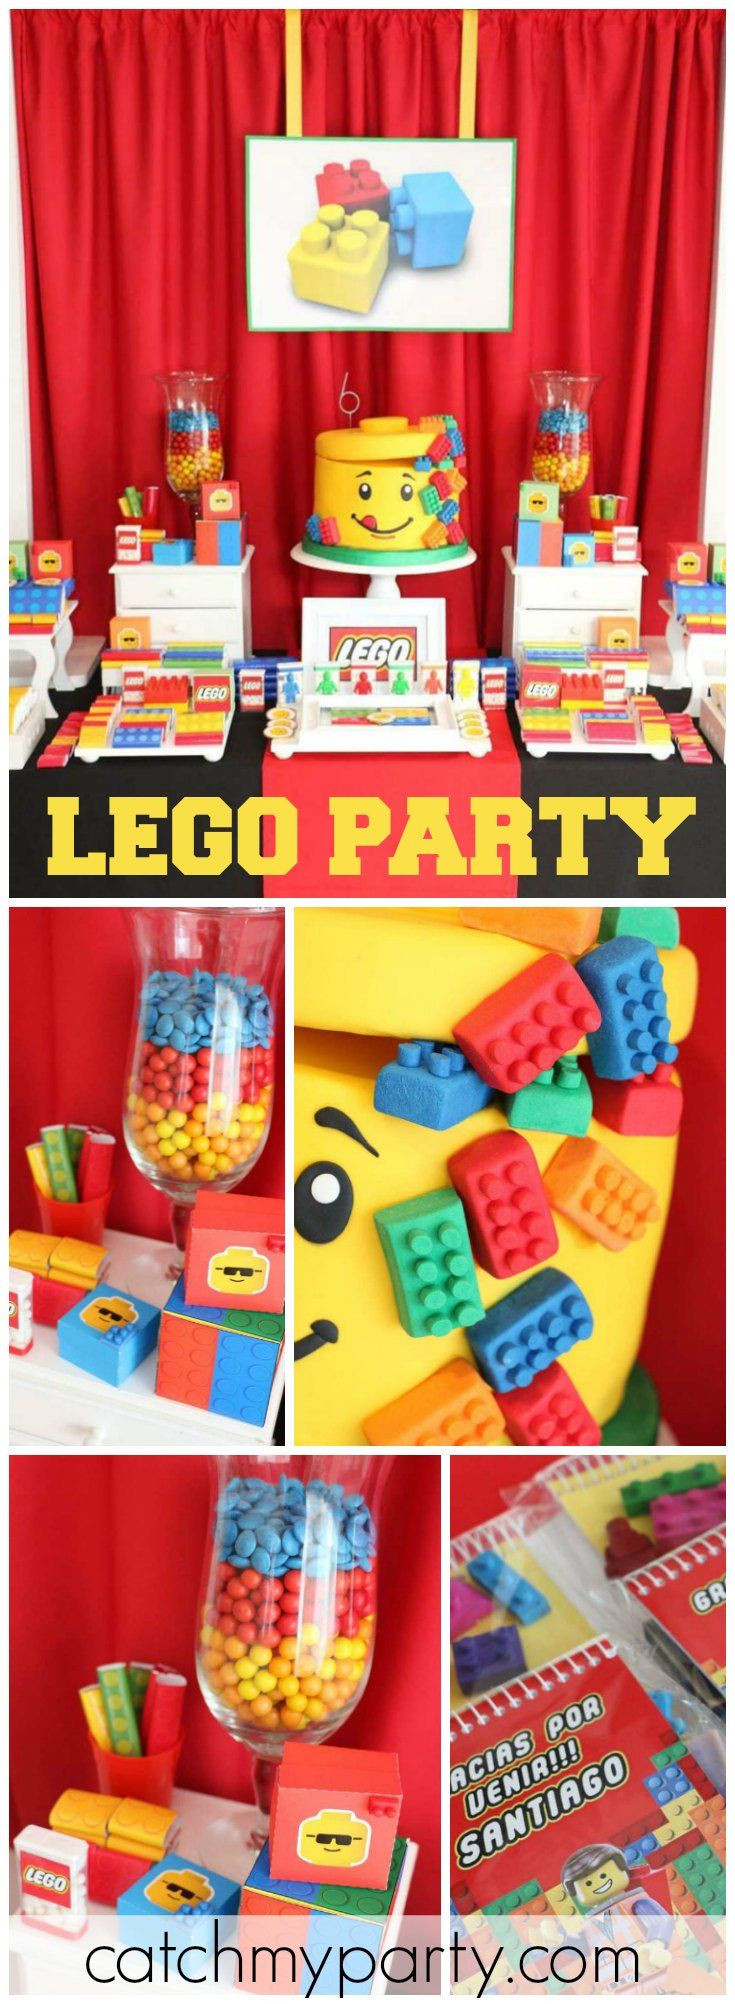 Best ideas about 4 Year Old Birthday Party Ideas . Save or Pin 362 best Lego Party Ideas images on Pinterest Now.